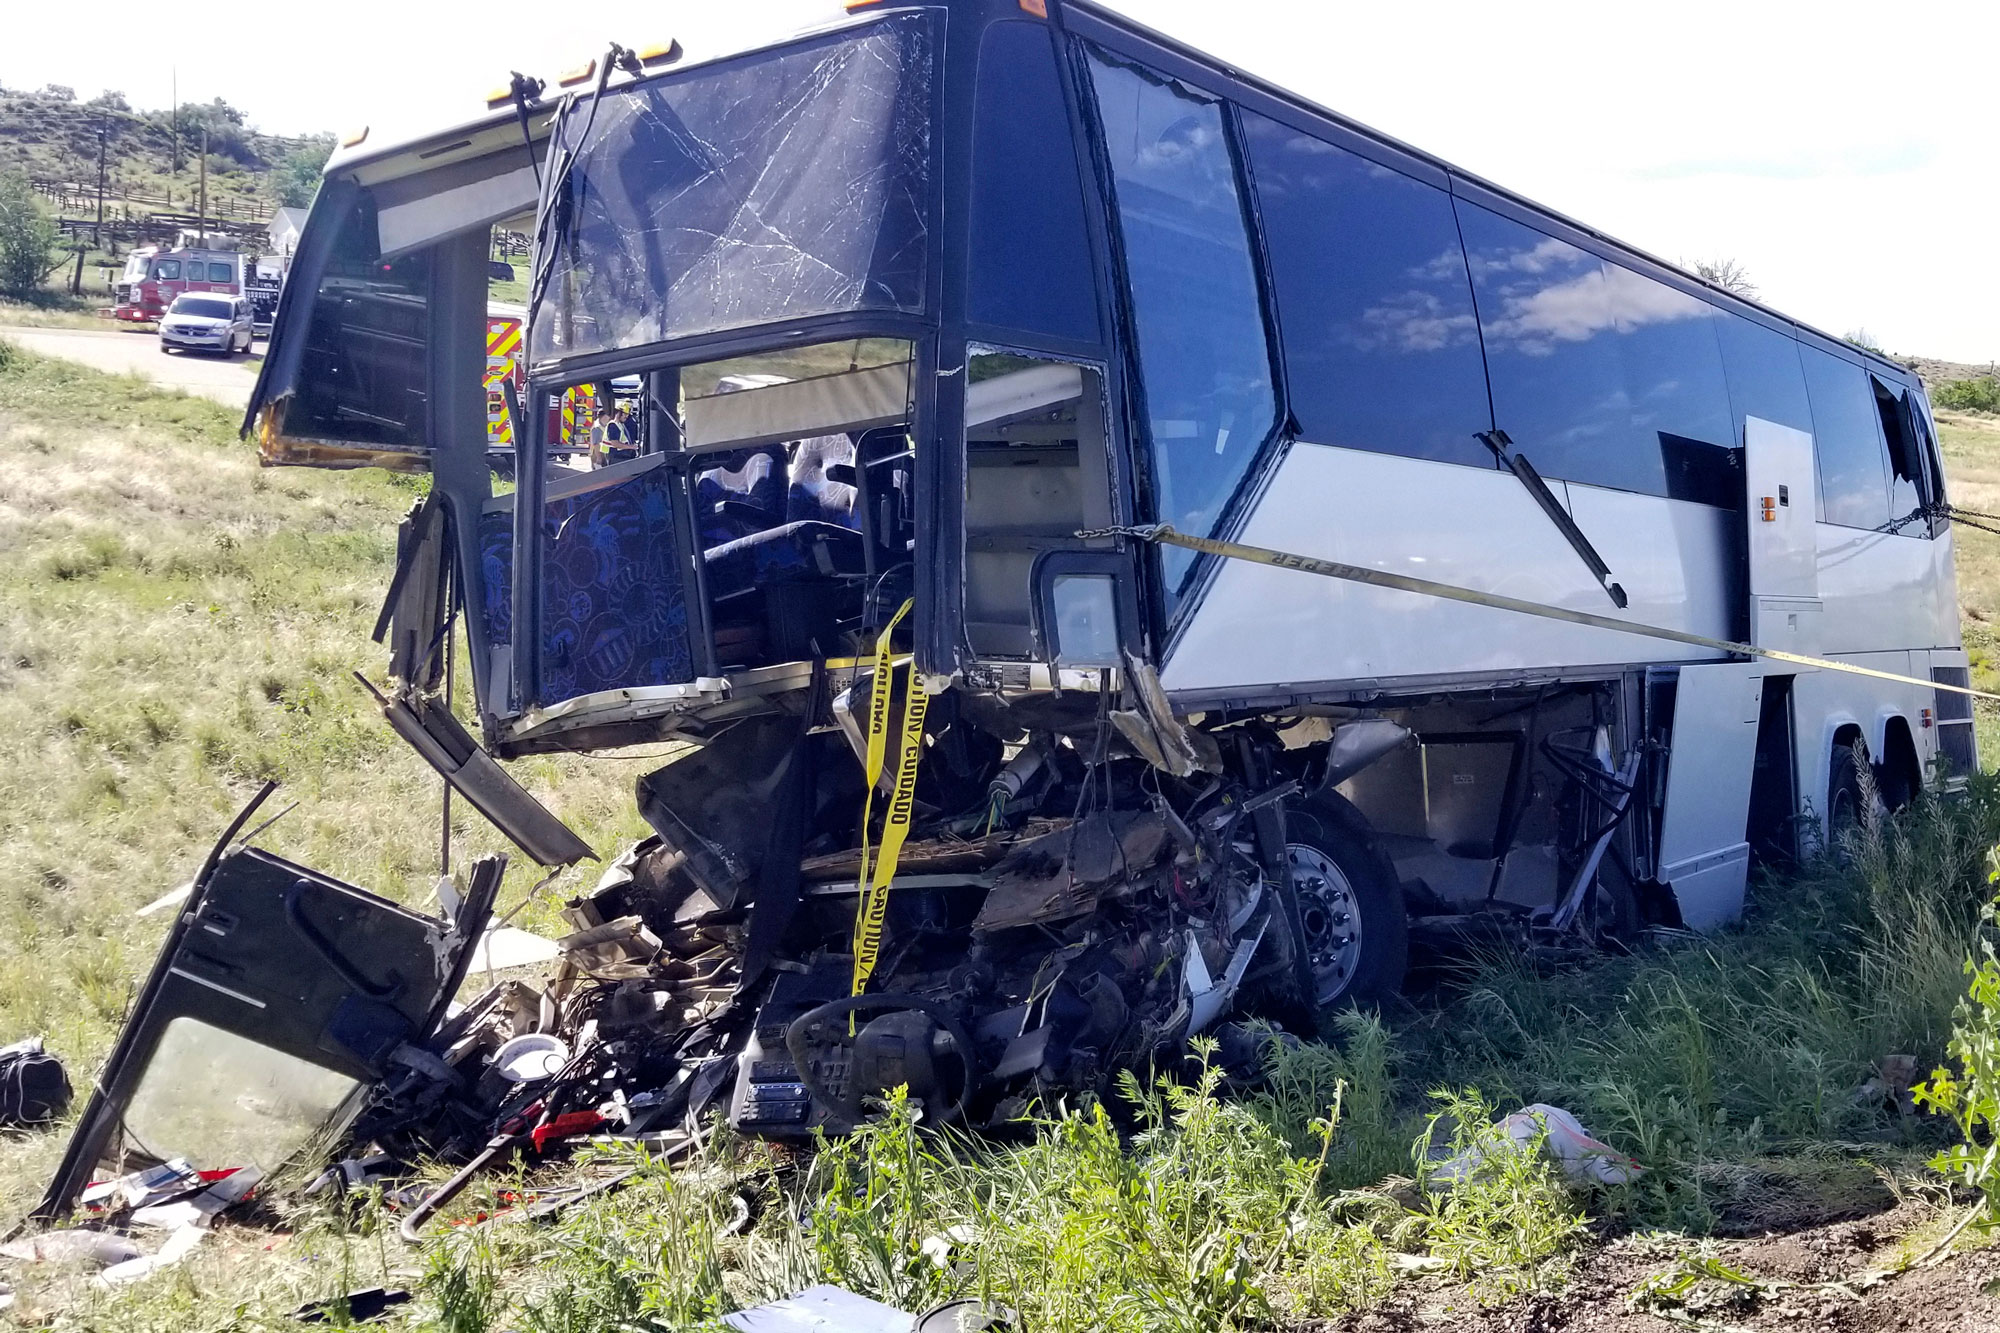 <p>This Sunday, June 23, 2019 photo, provided by the Colorado State Patrol shows a charter bus involved in a crash along Interstate 25 north of Pueblo, Colo., that killed 2 people and injured at least 13.</p>